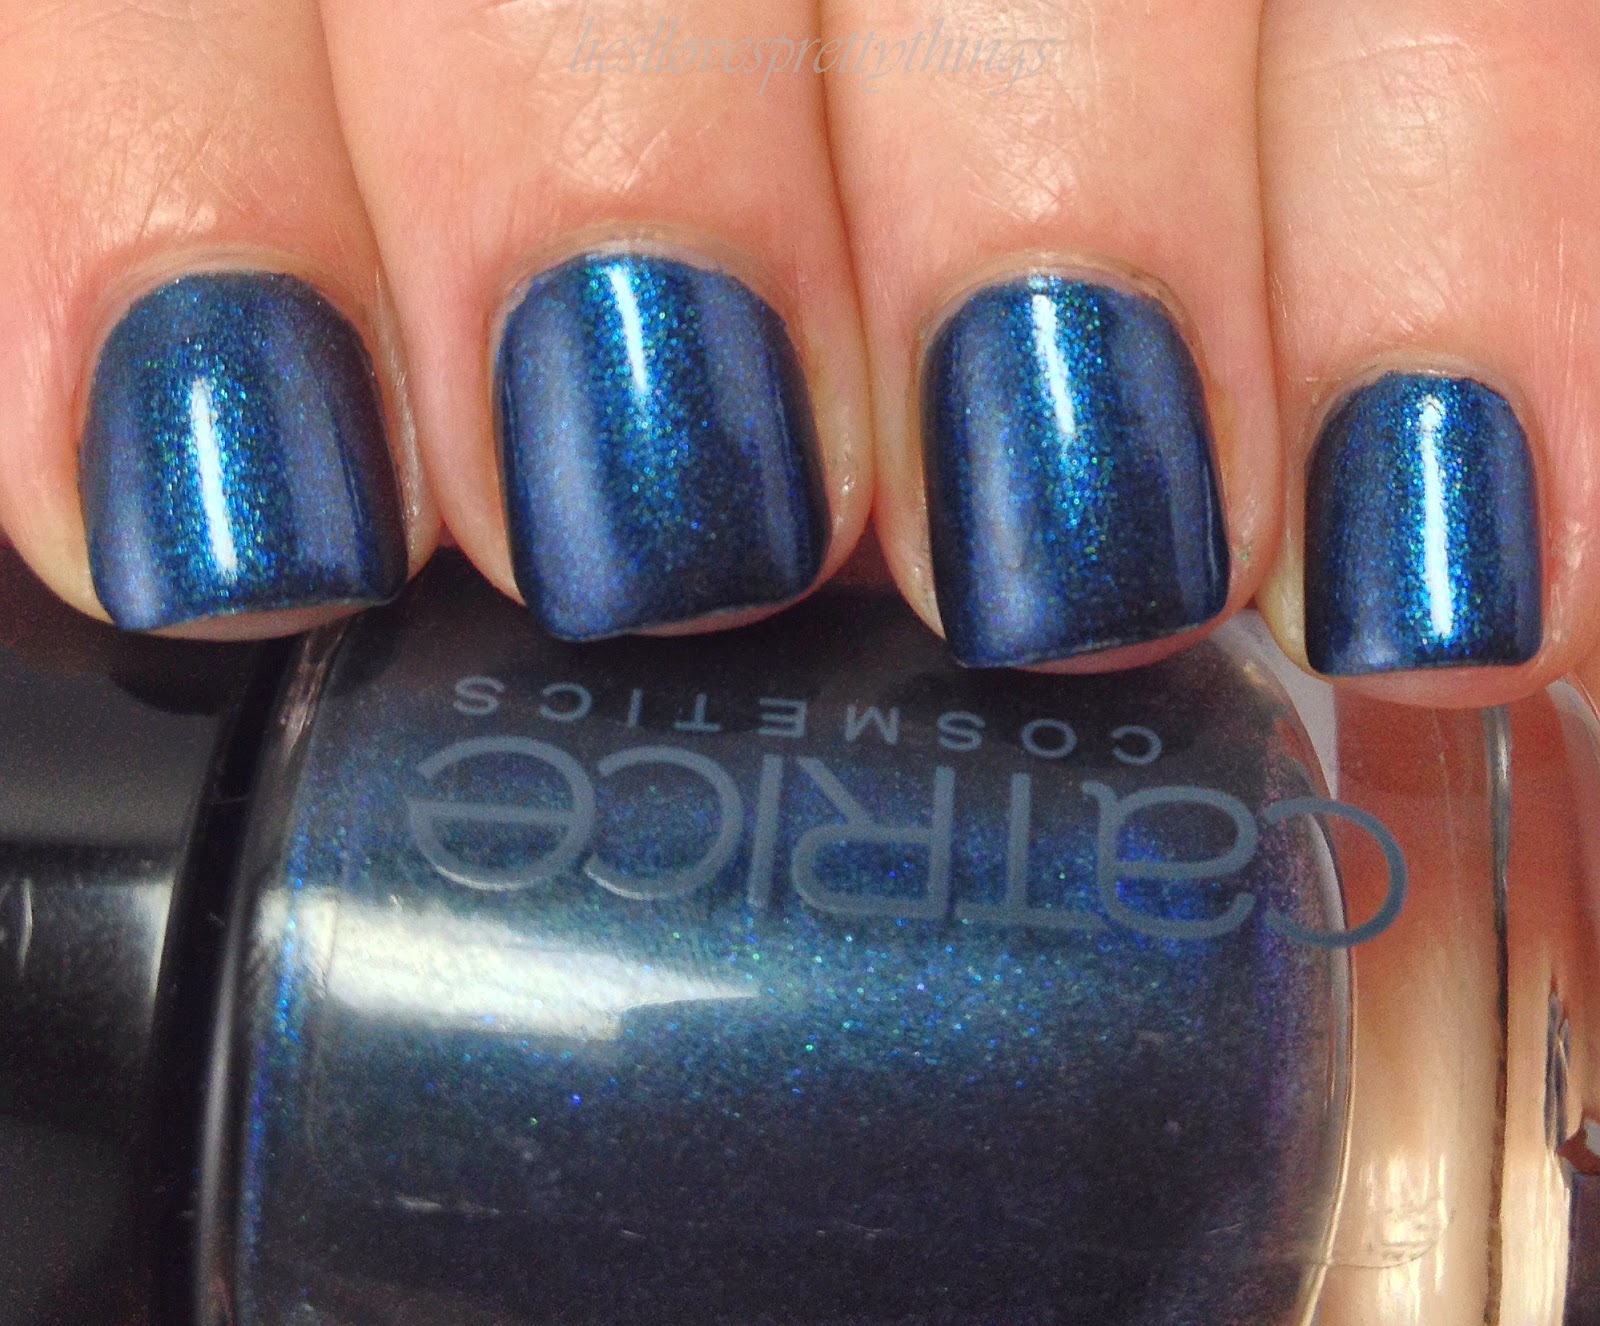 Catrice George Blueney swatch